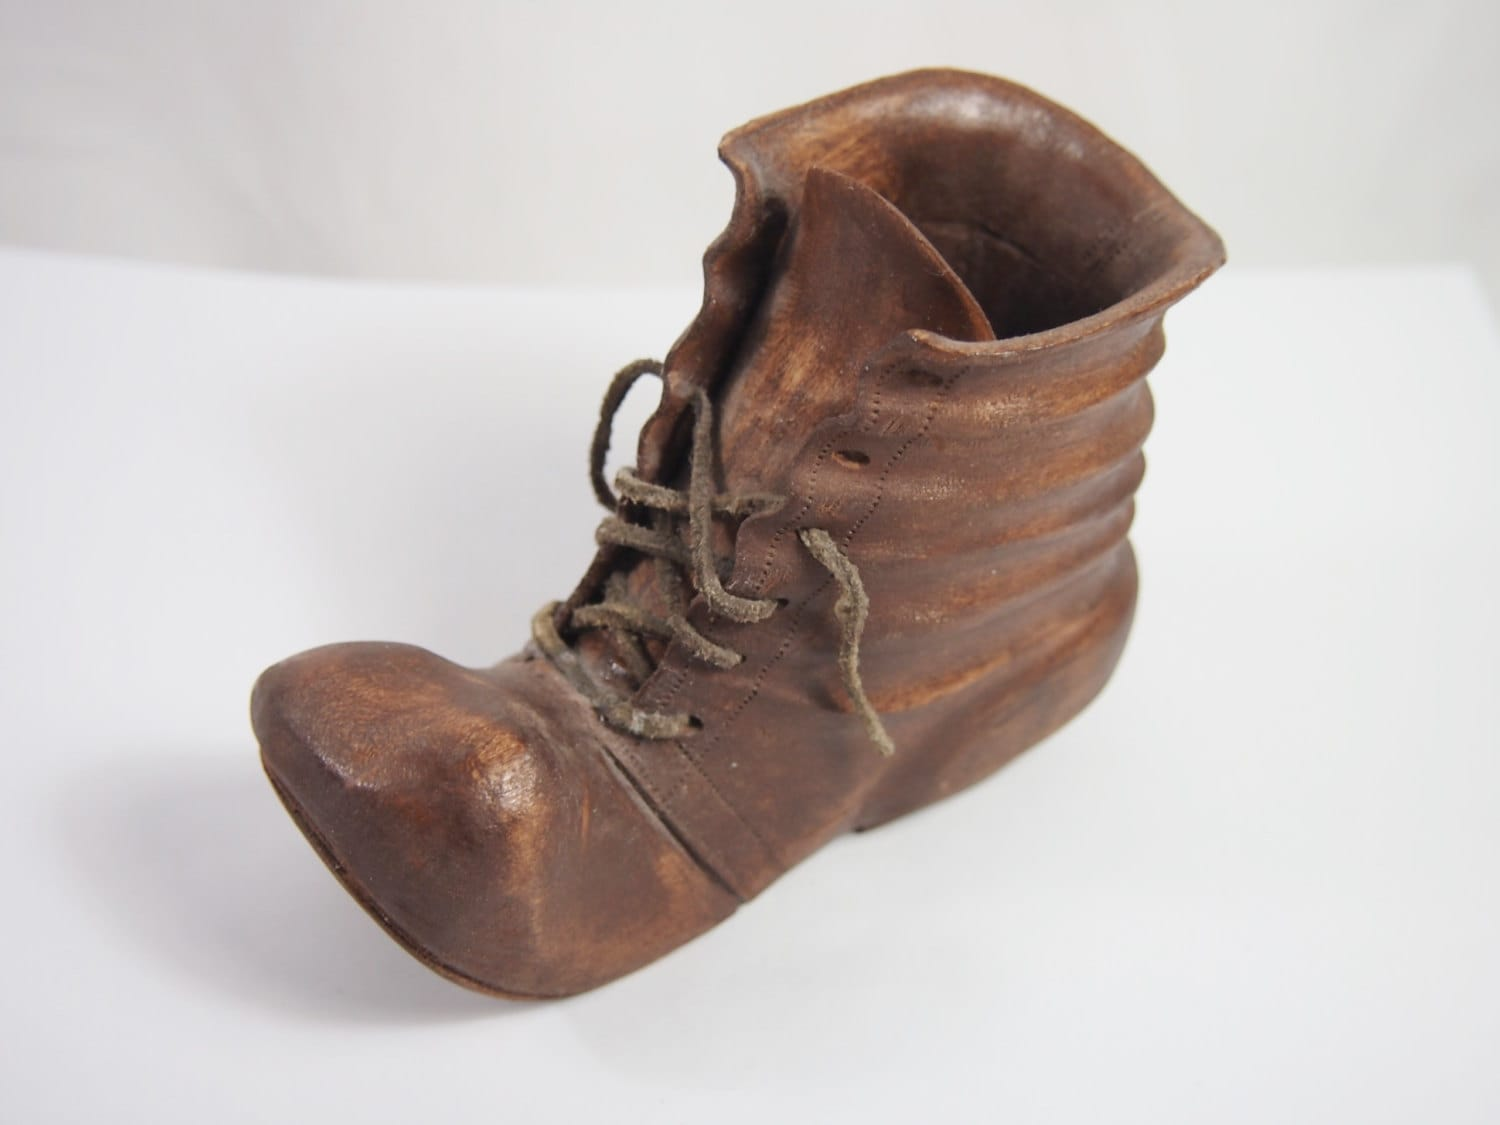 vintage carved wood bum hobo shoe 40s 50s figurine